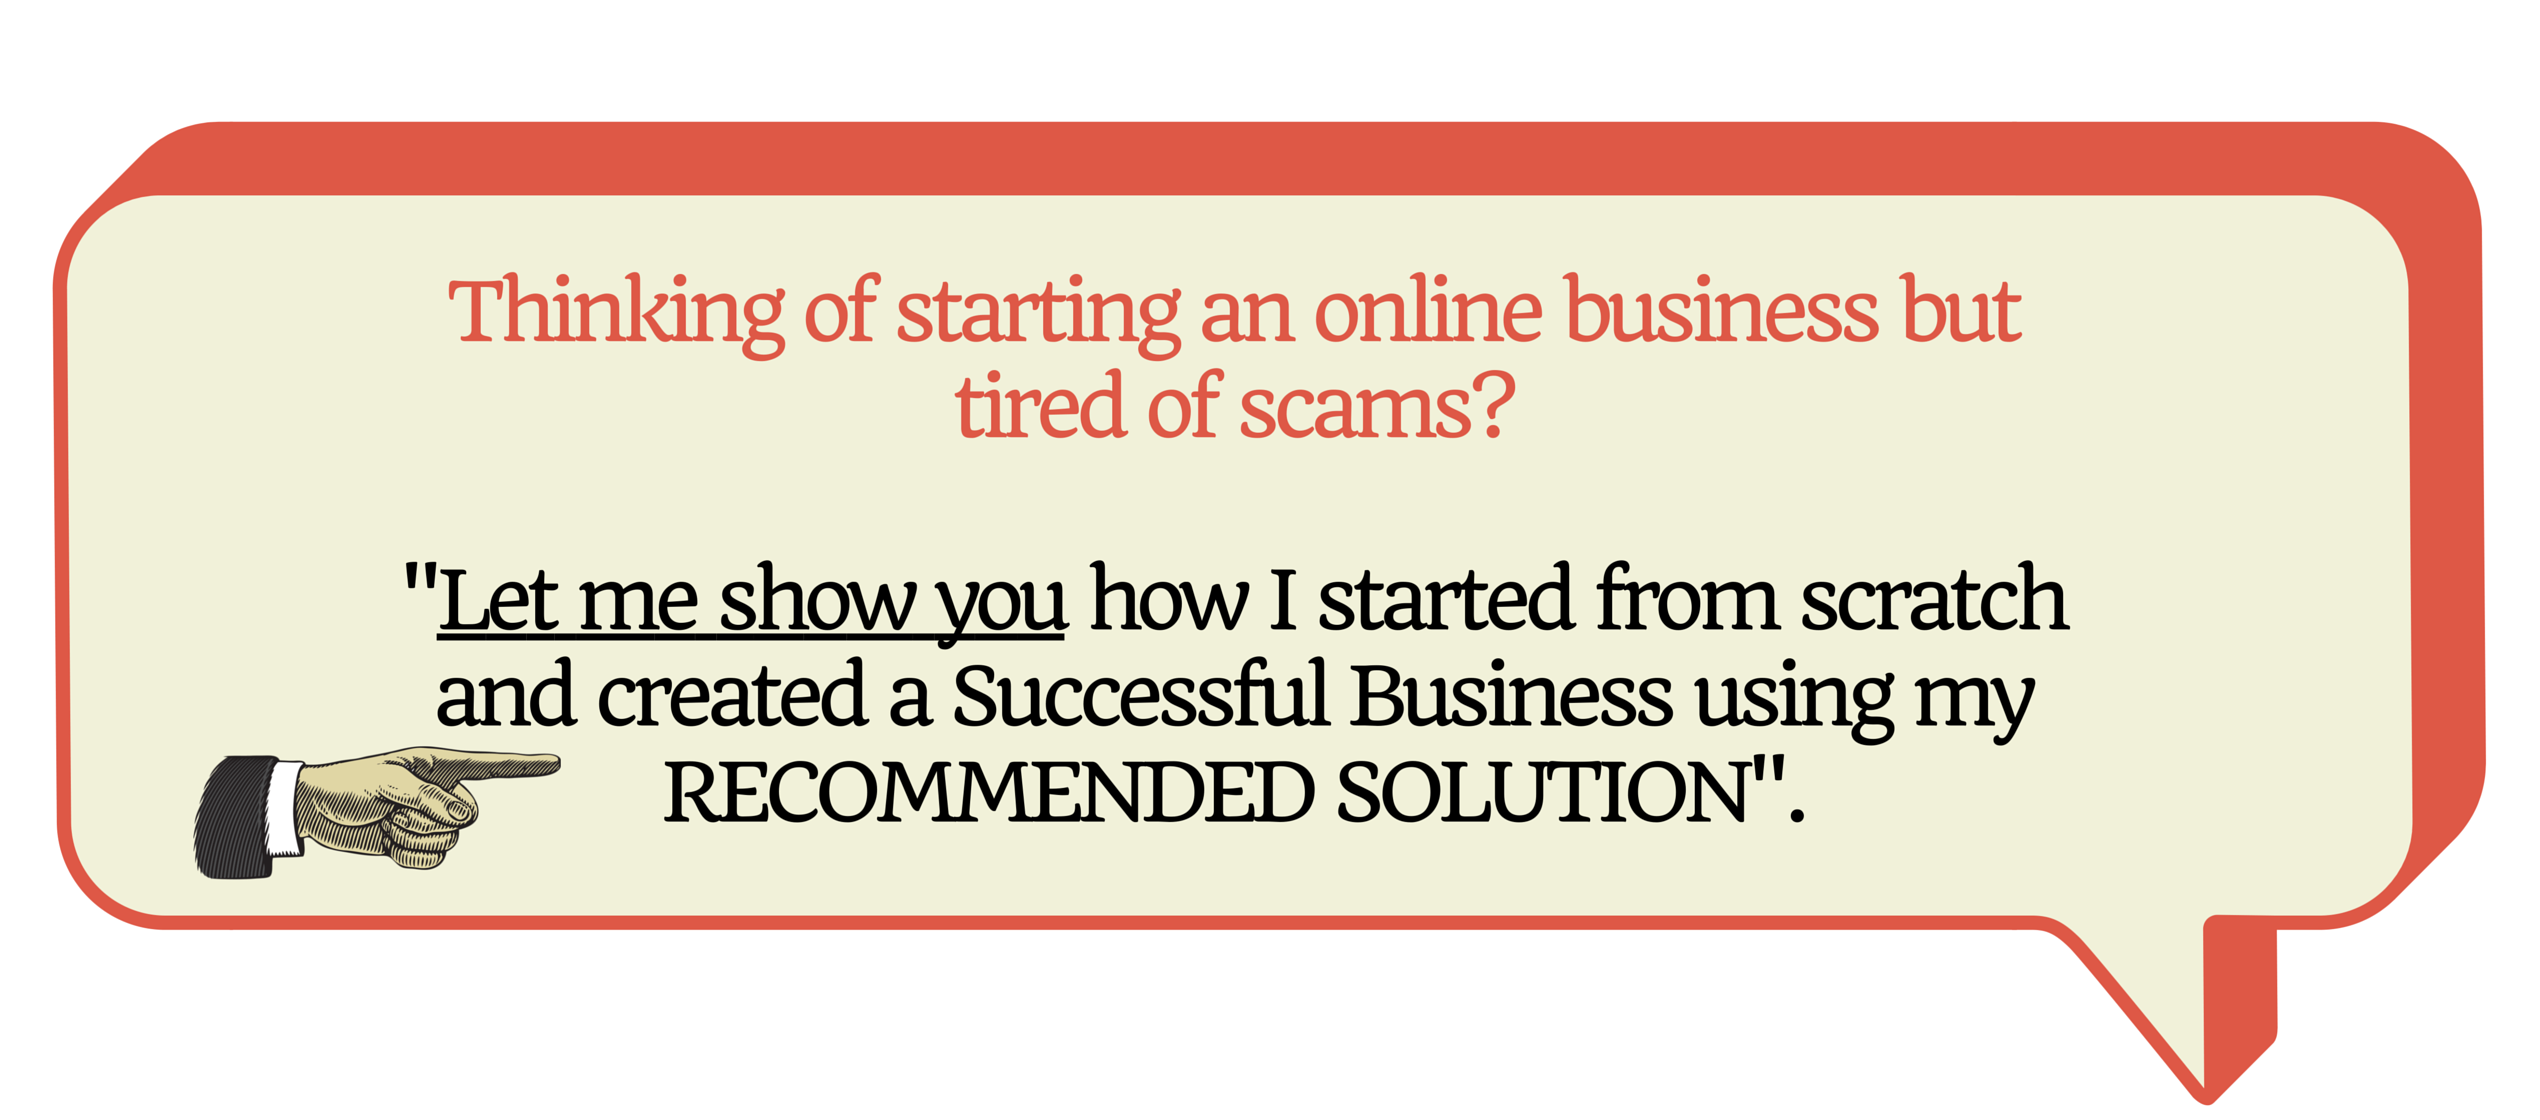 Thinking of starting an online business but tired of scams-